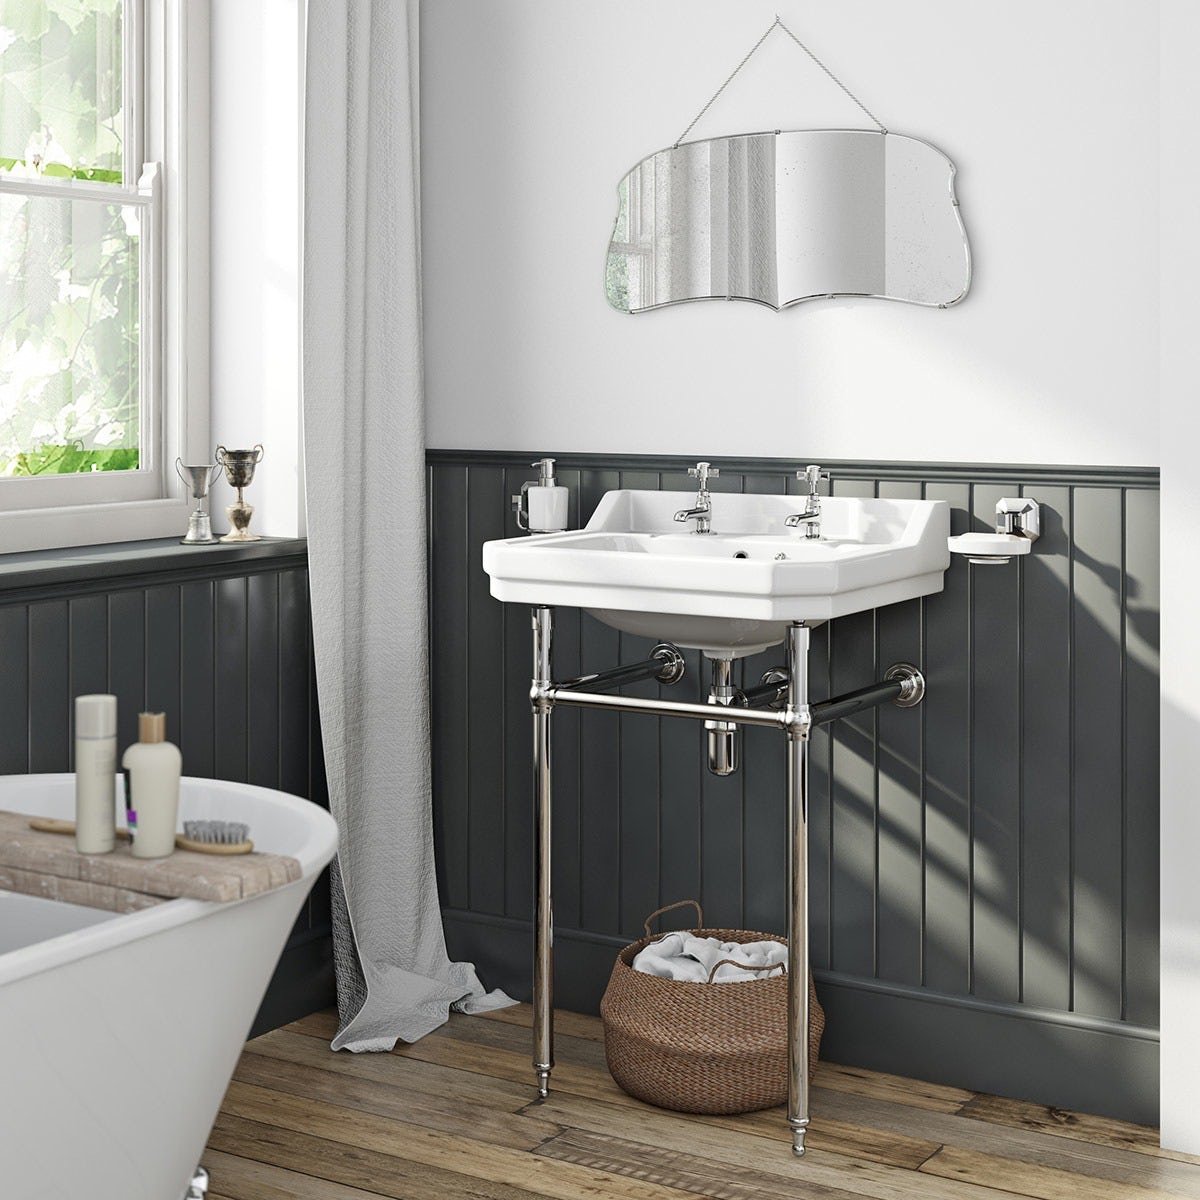 Earl Grey kitchen & bathroom paint